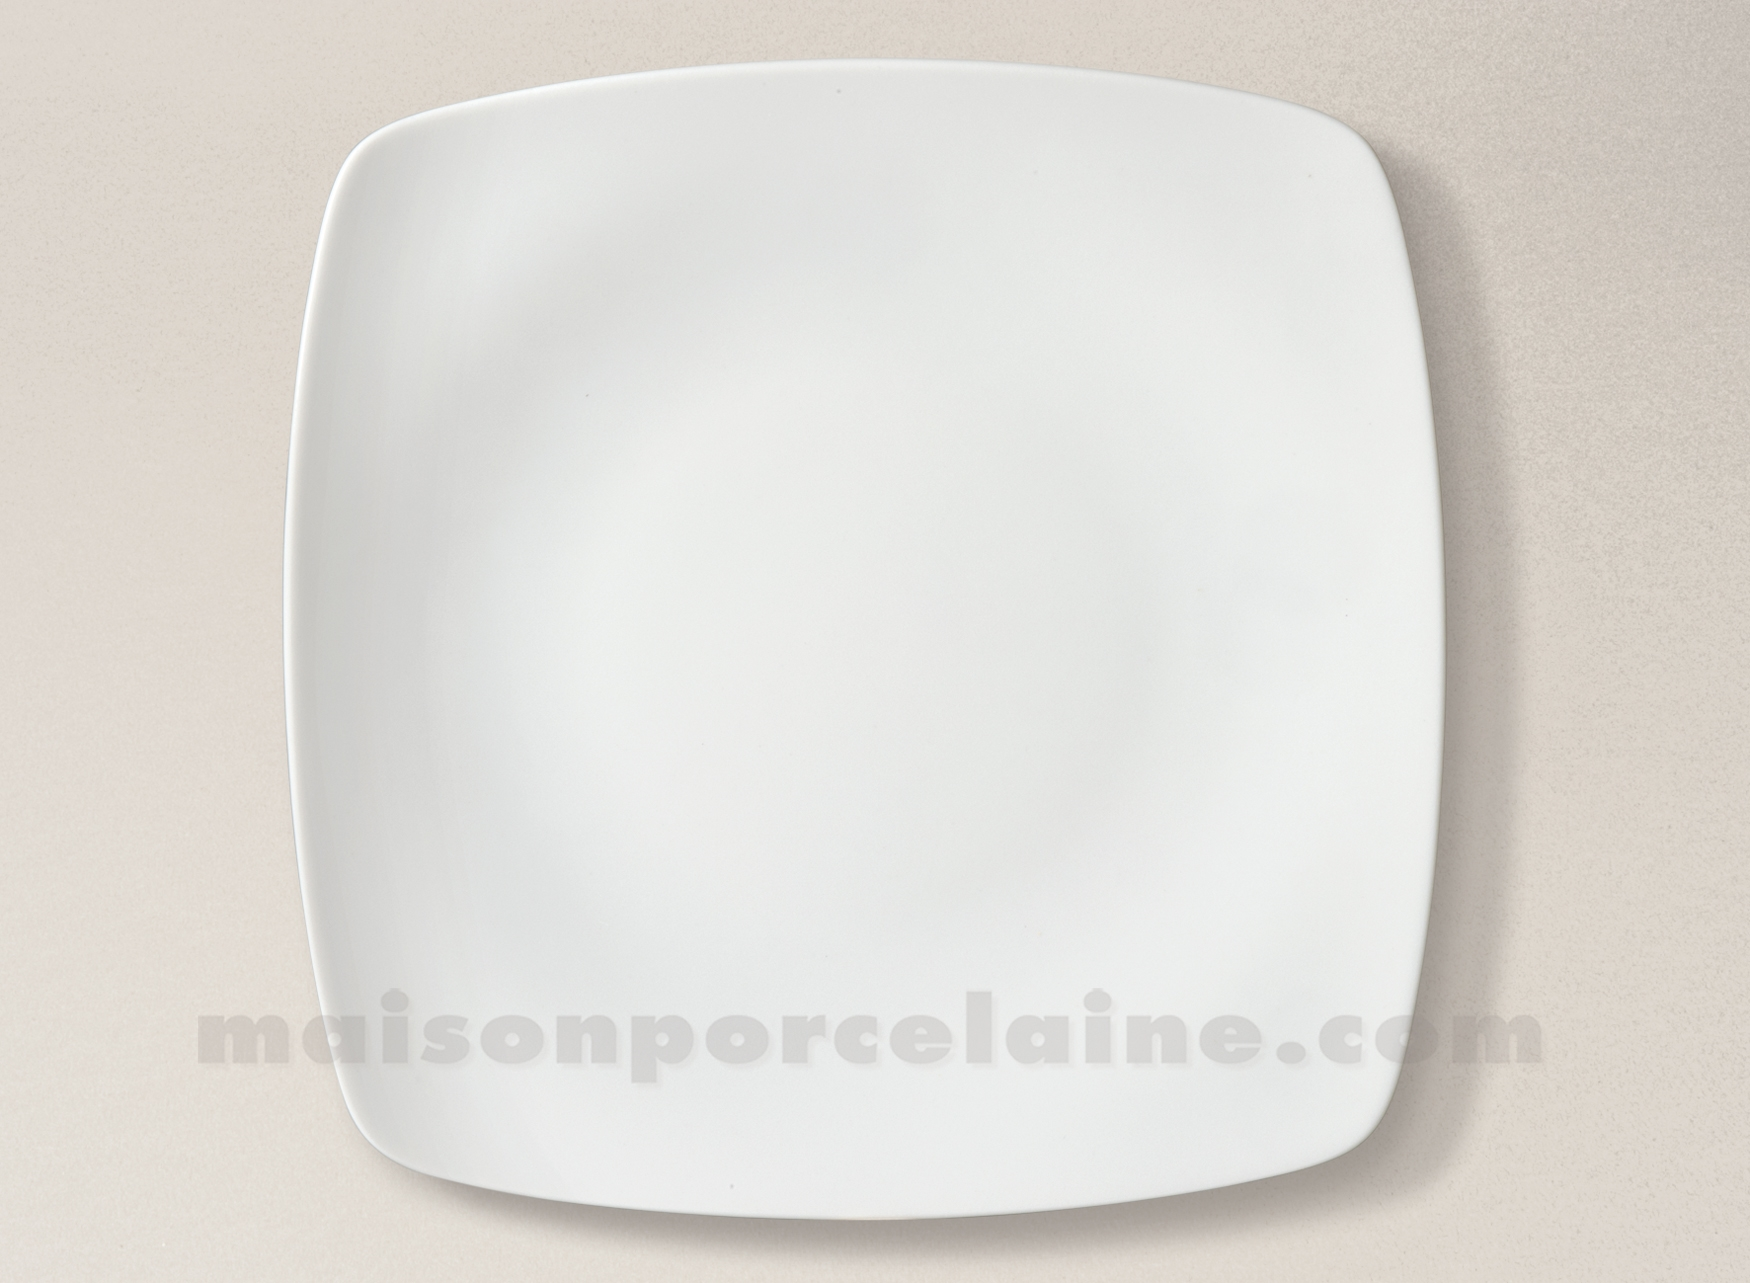 assiette carree plate porcelaine blanche sahara 25x25. Black Bedroom Furniture Sets. Home Design Ideas